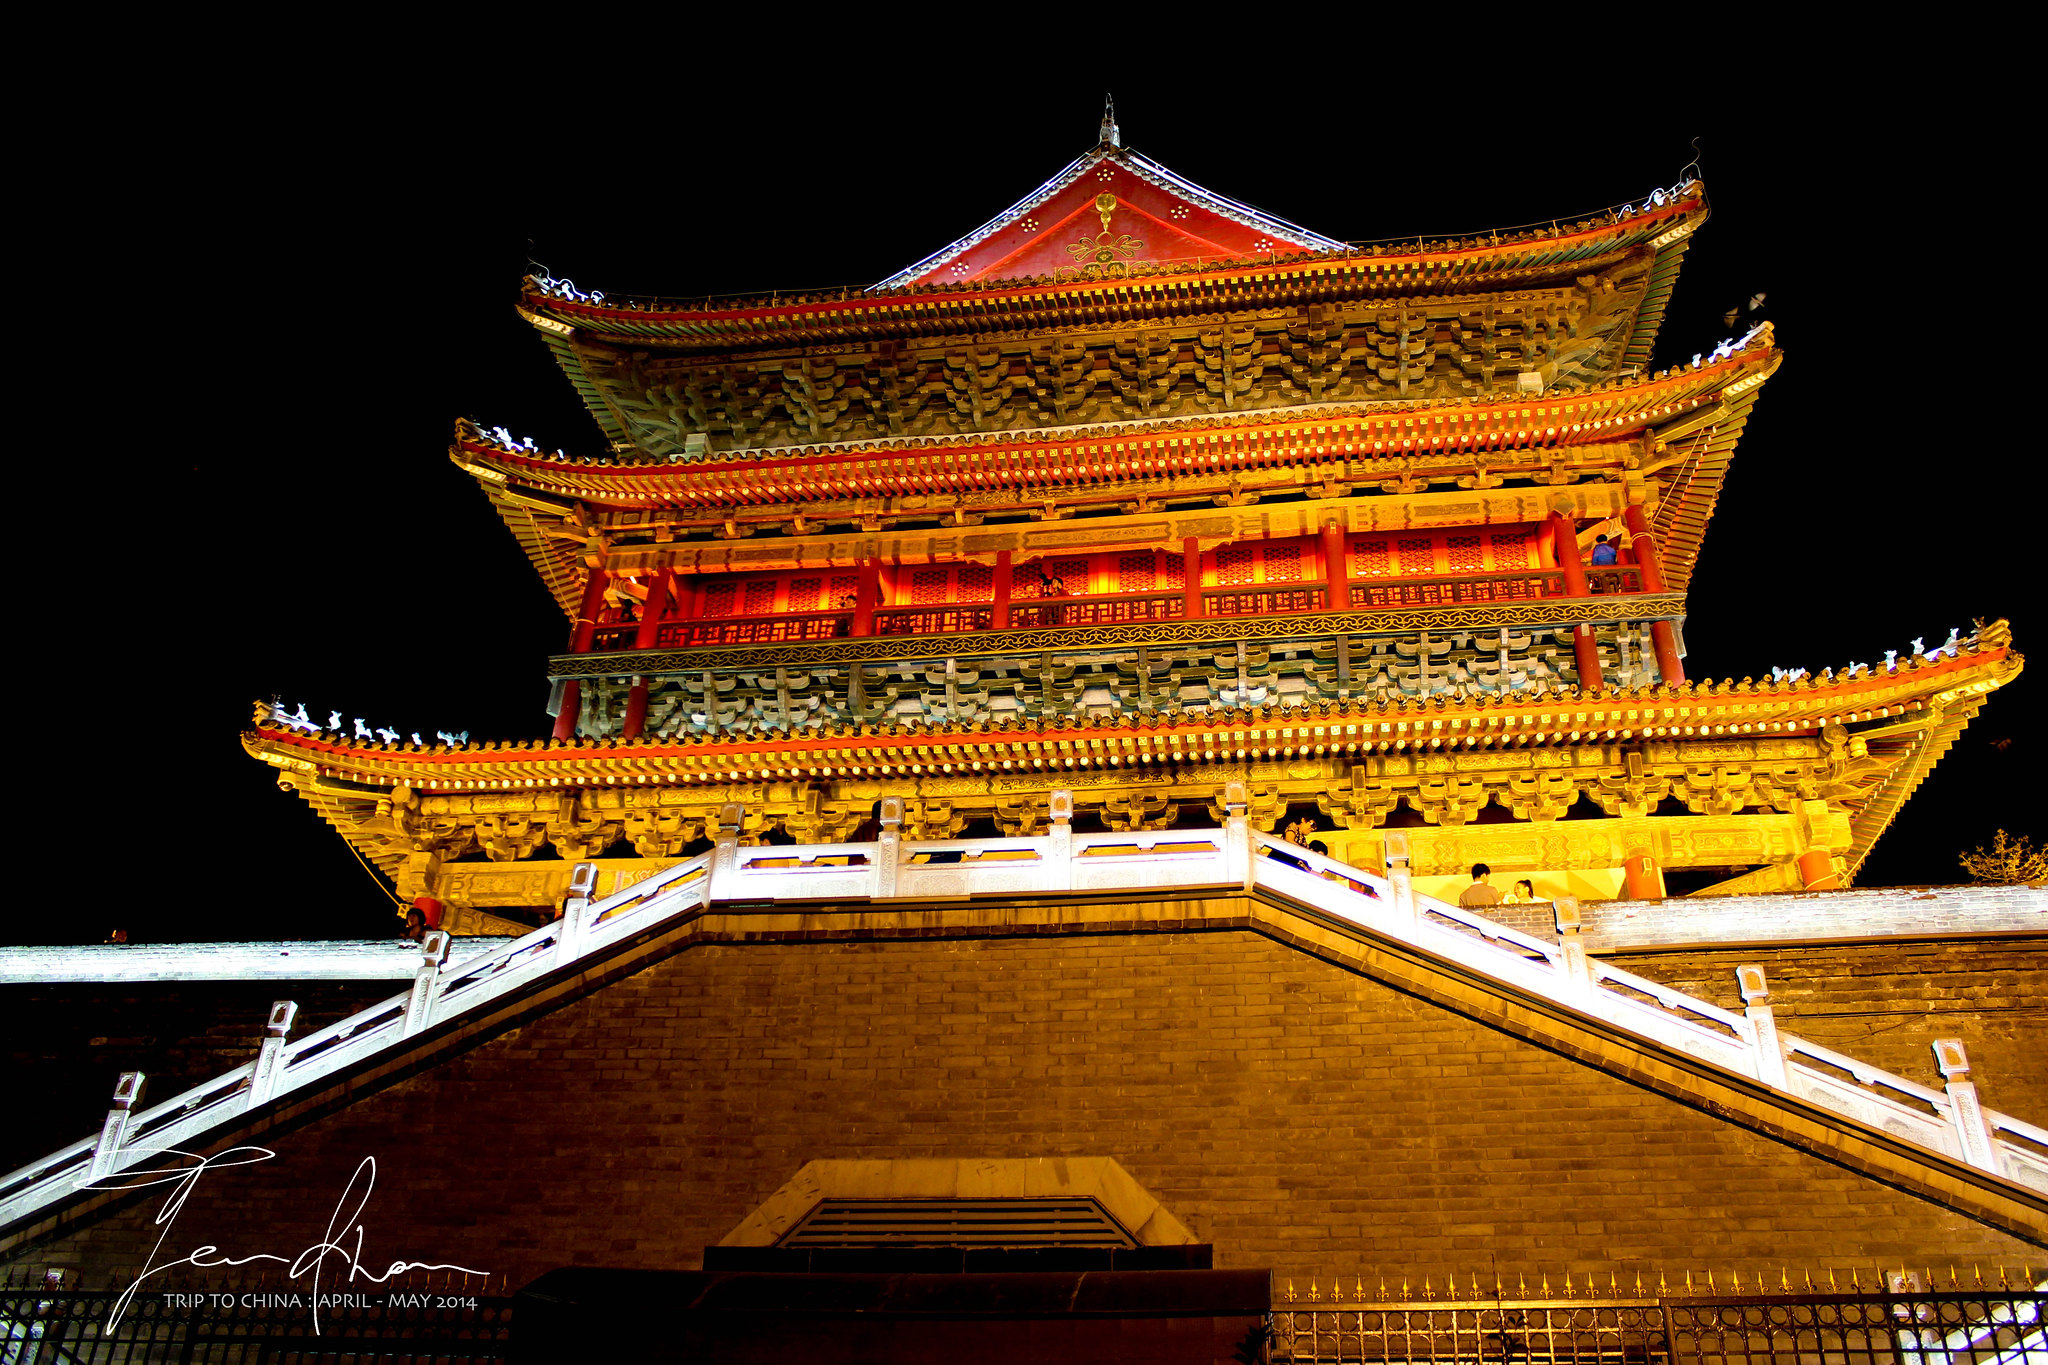 Drum Tower, Xi'an